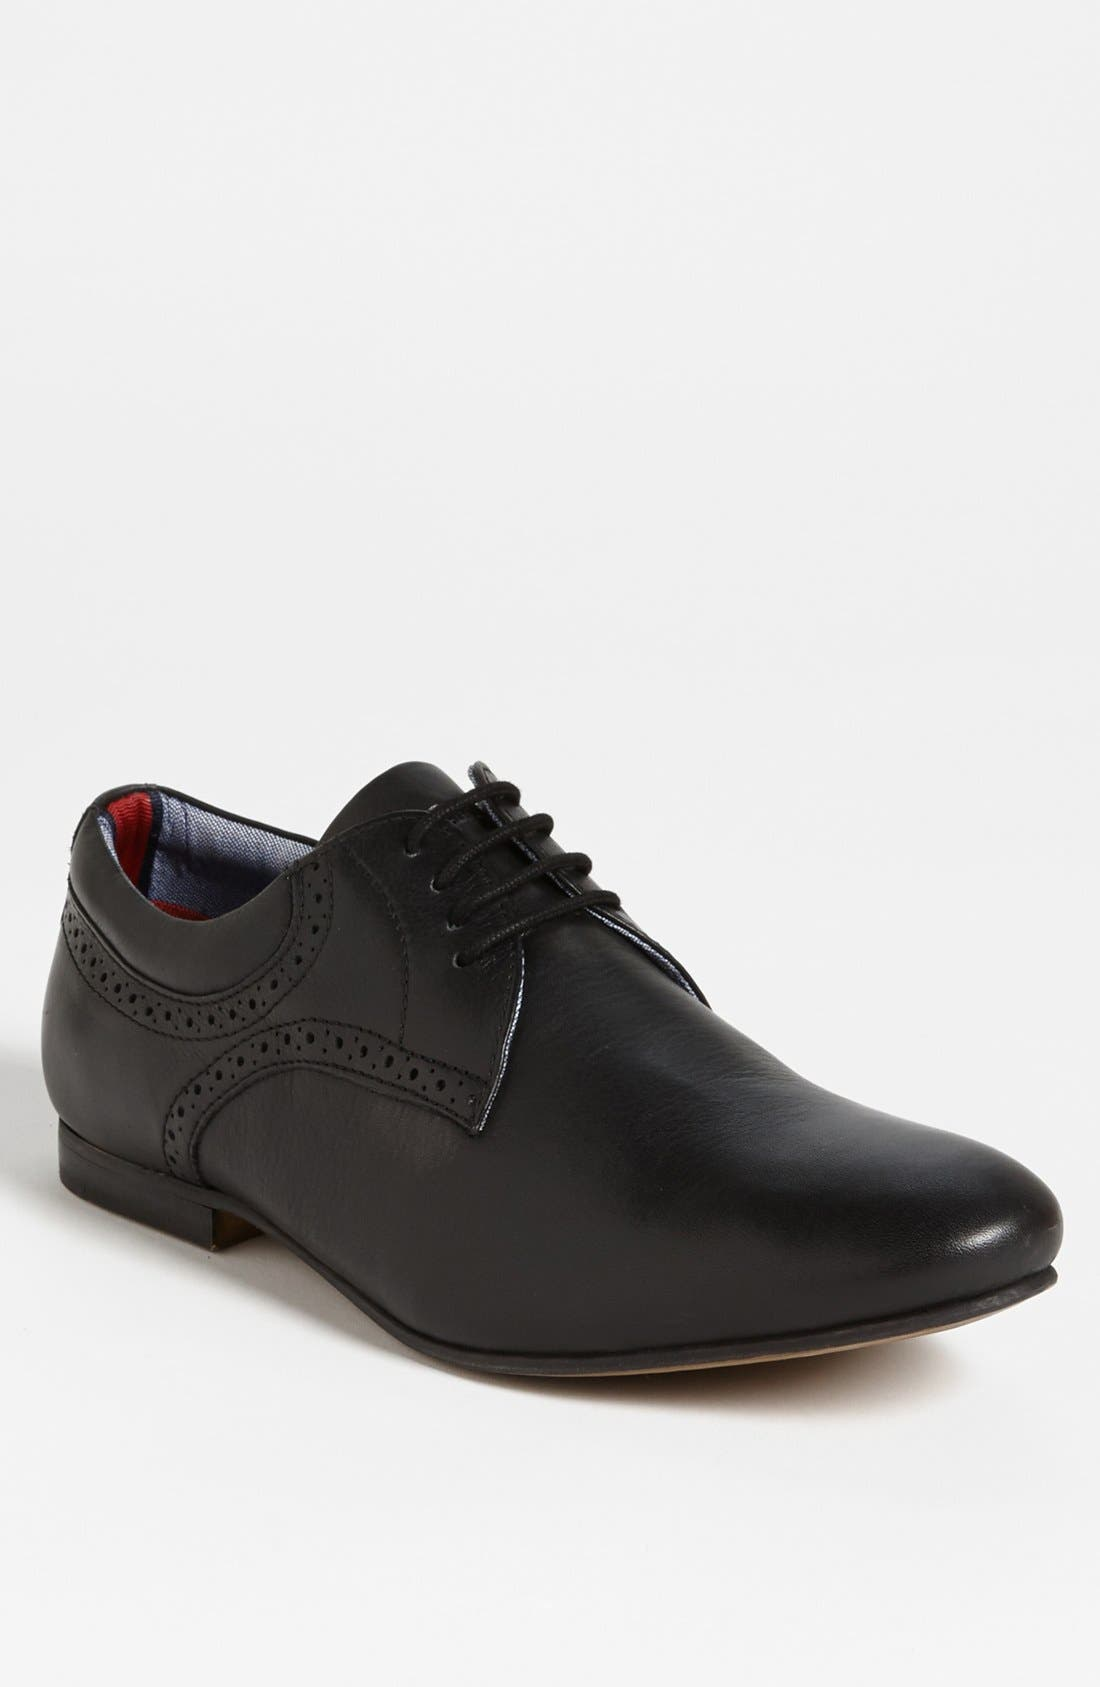 Alternate Image 1 Selected - Ben Sherman 'Vim' Plain Toe Derby